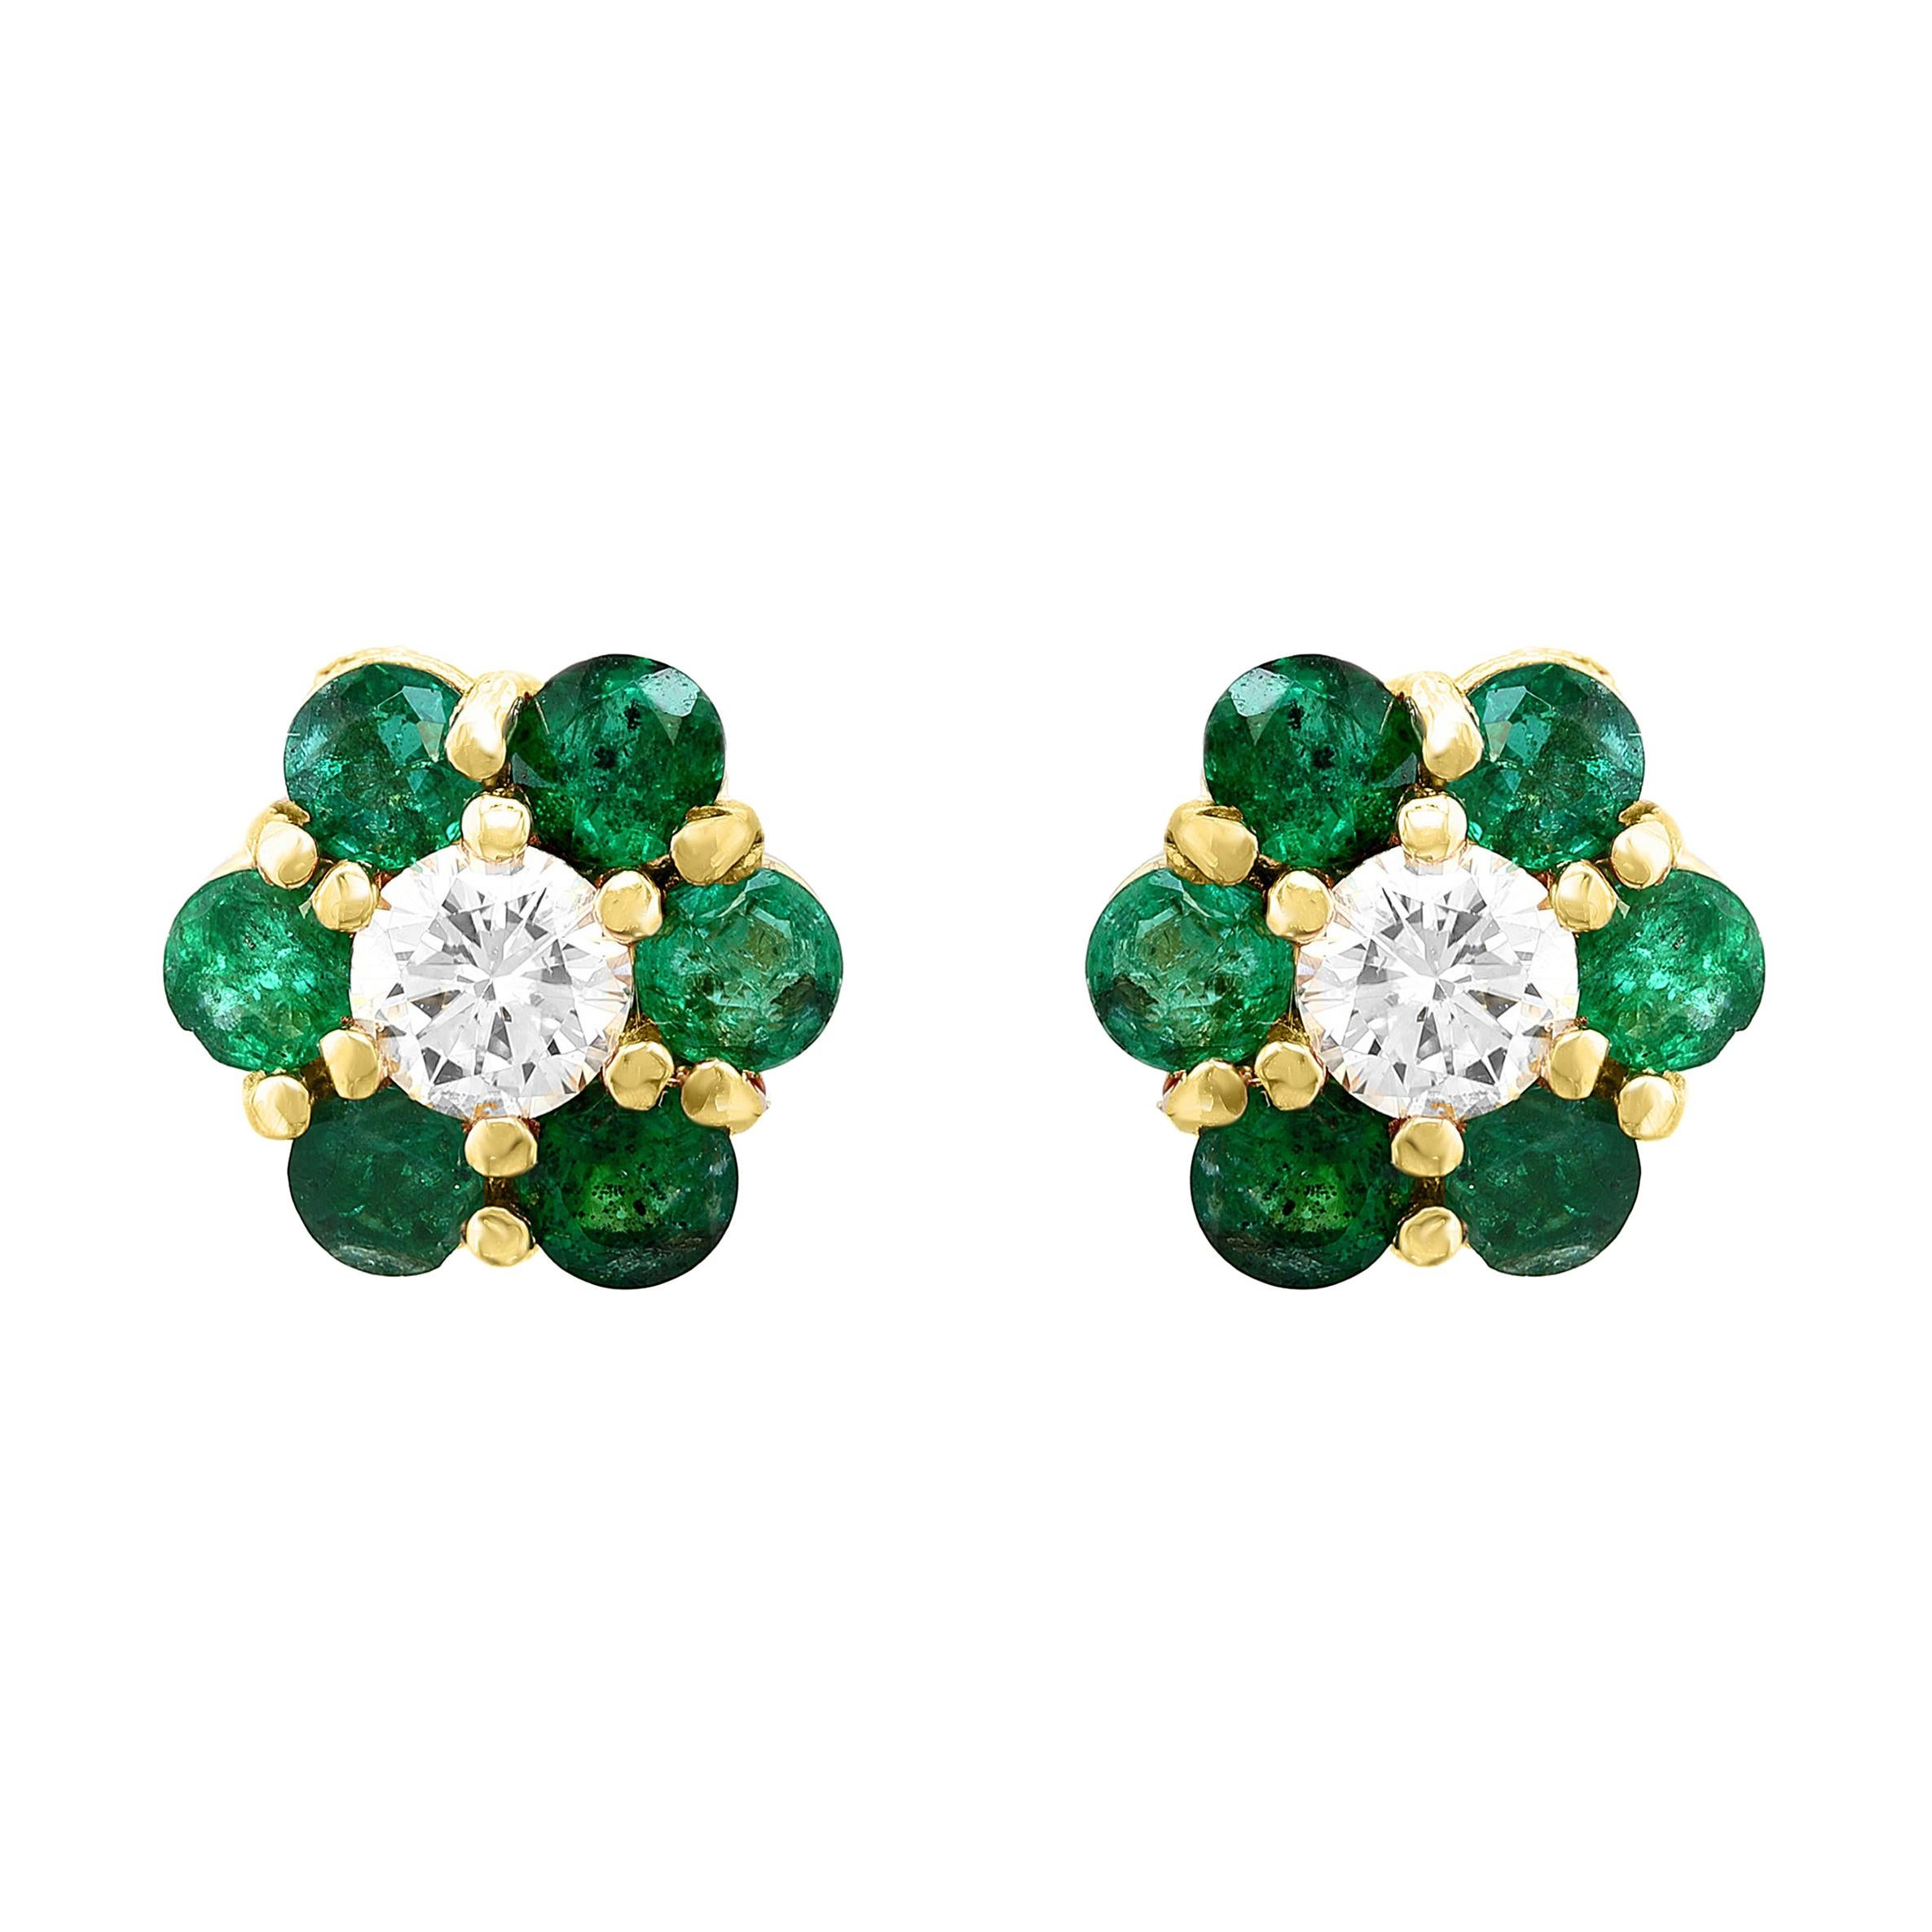 Emerald and Solitaire Diamonds Flower Post Earrings 14 Karat Yellow Gold